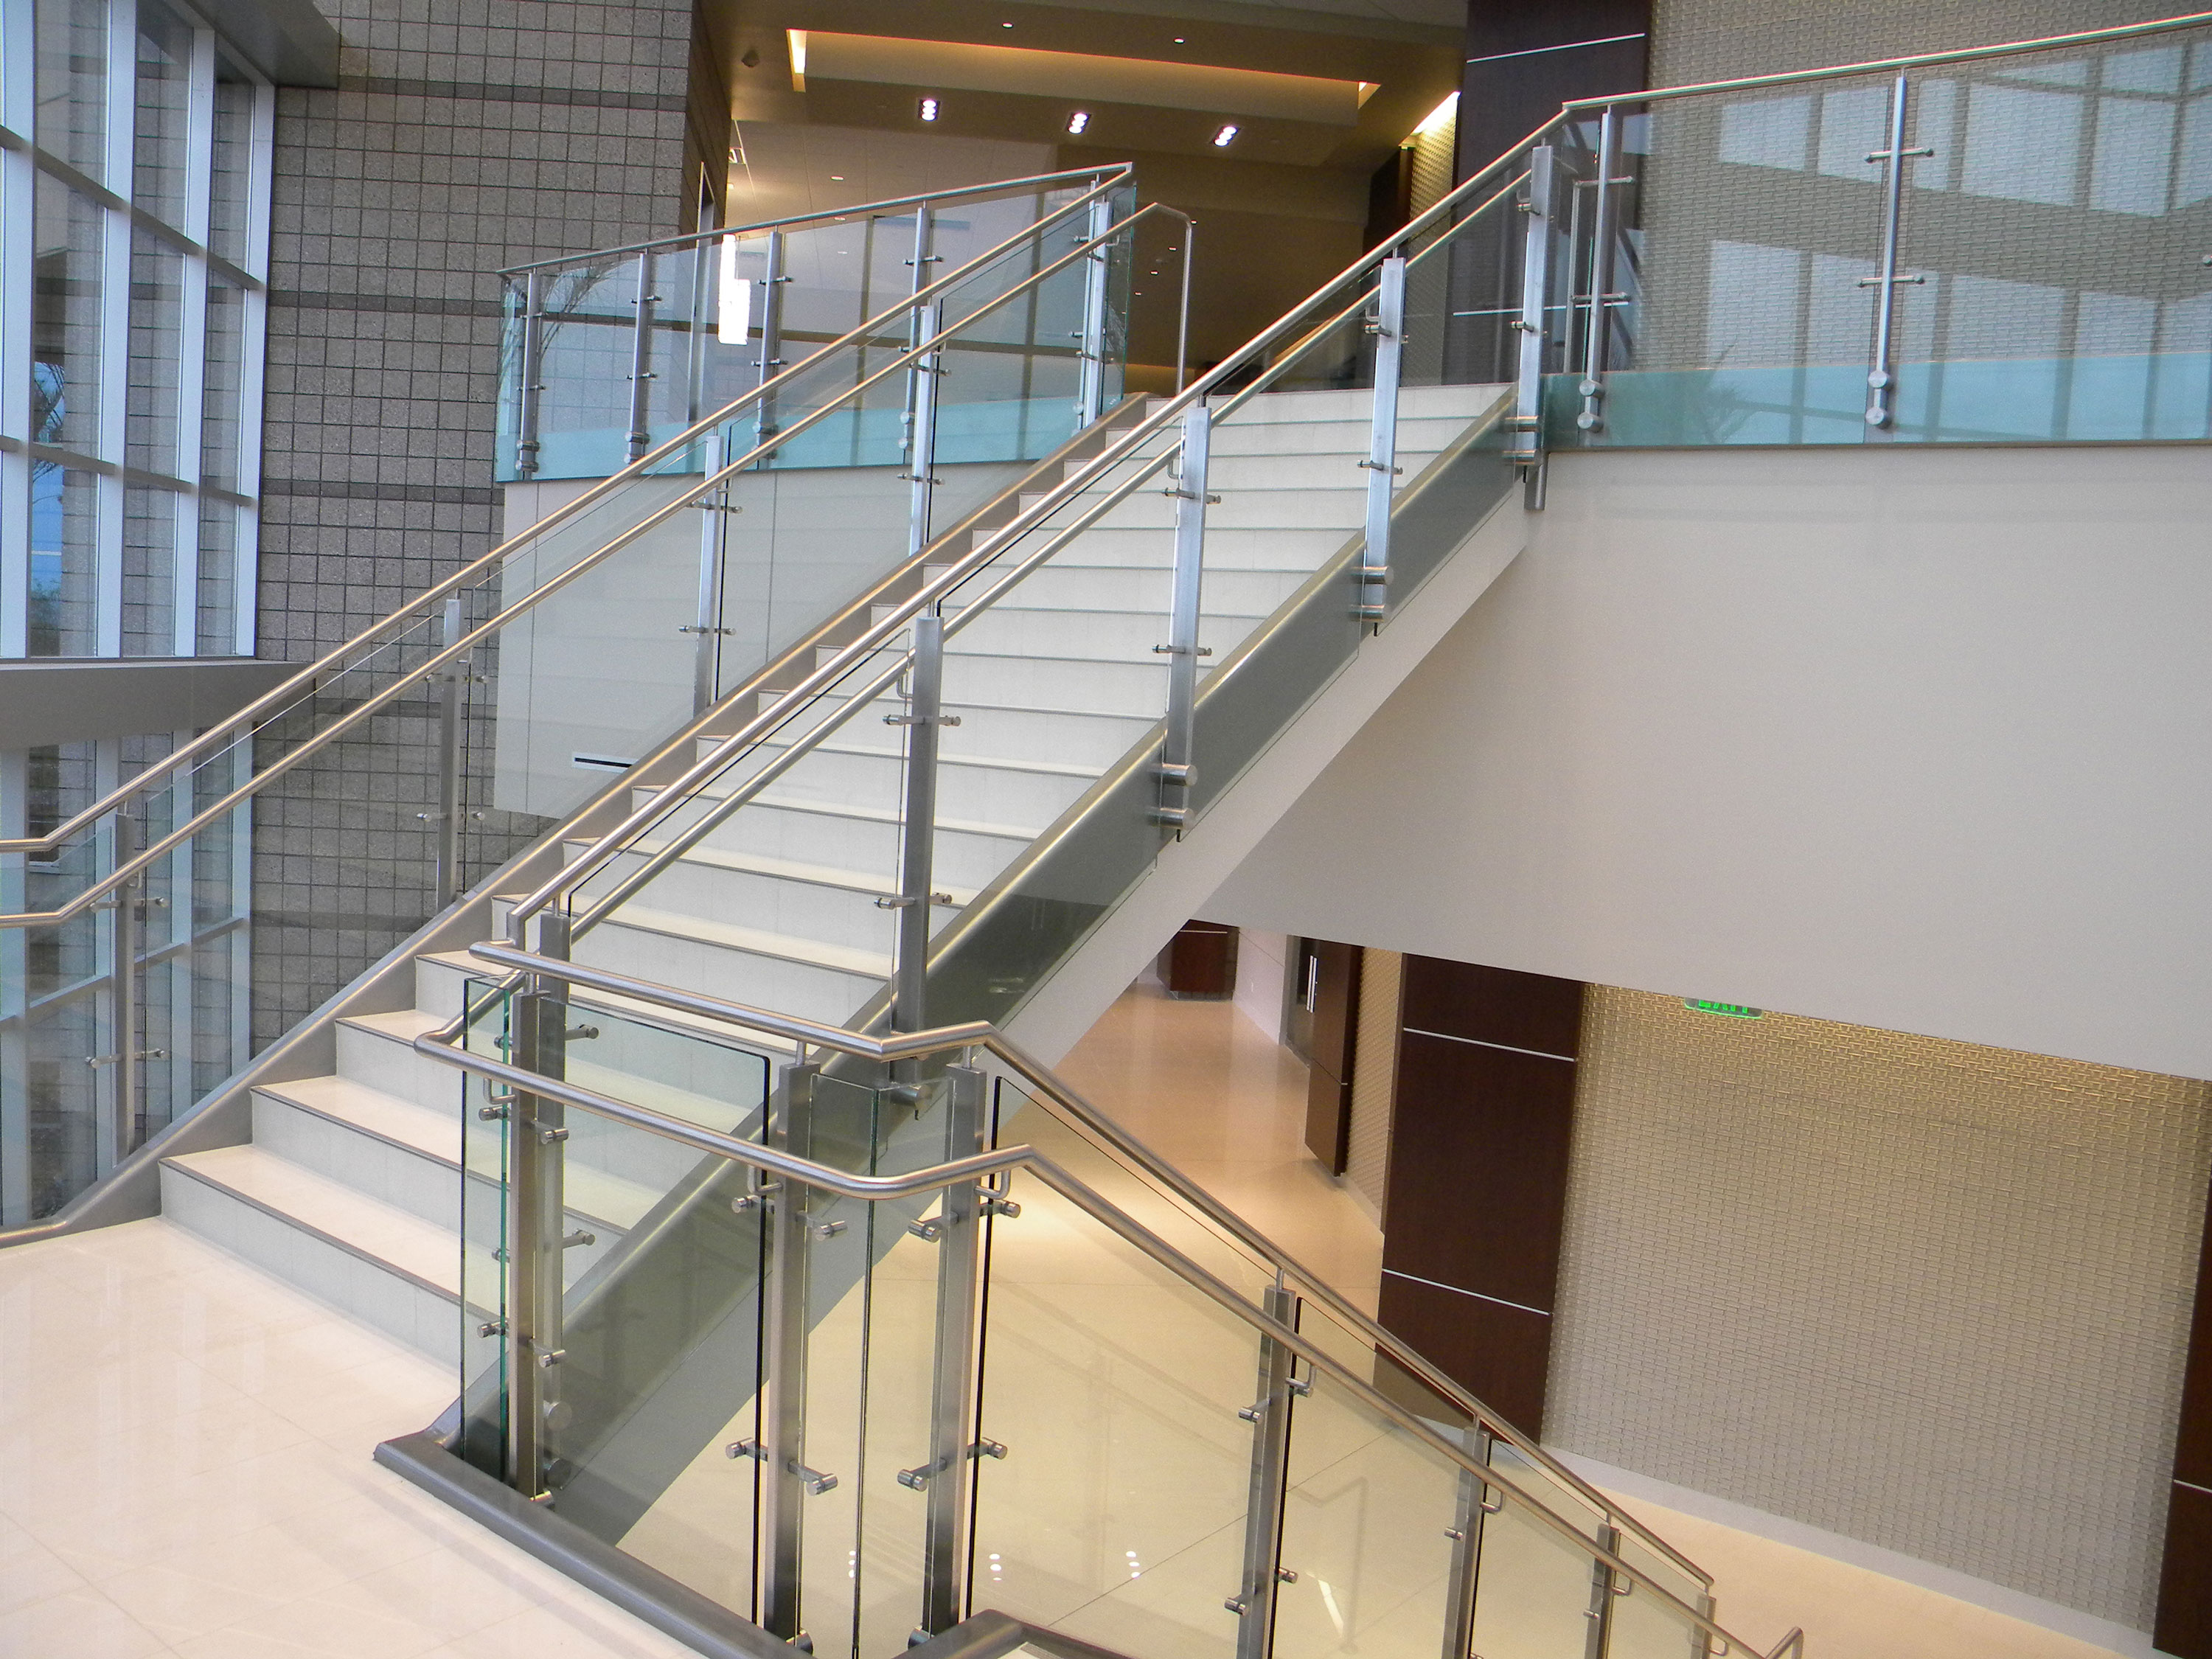 Continuim - glass with stainless steel post, cap rail and handrail.